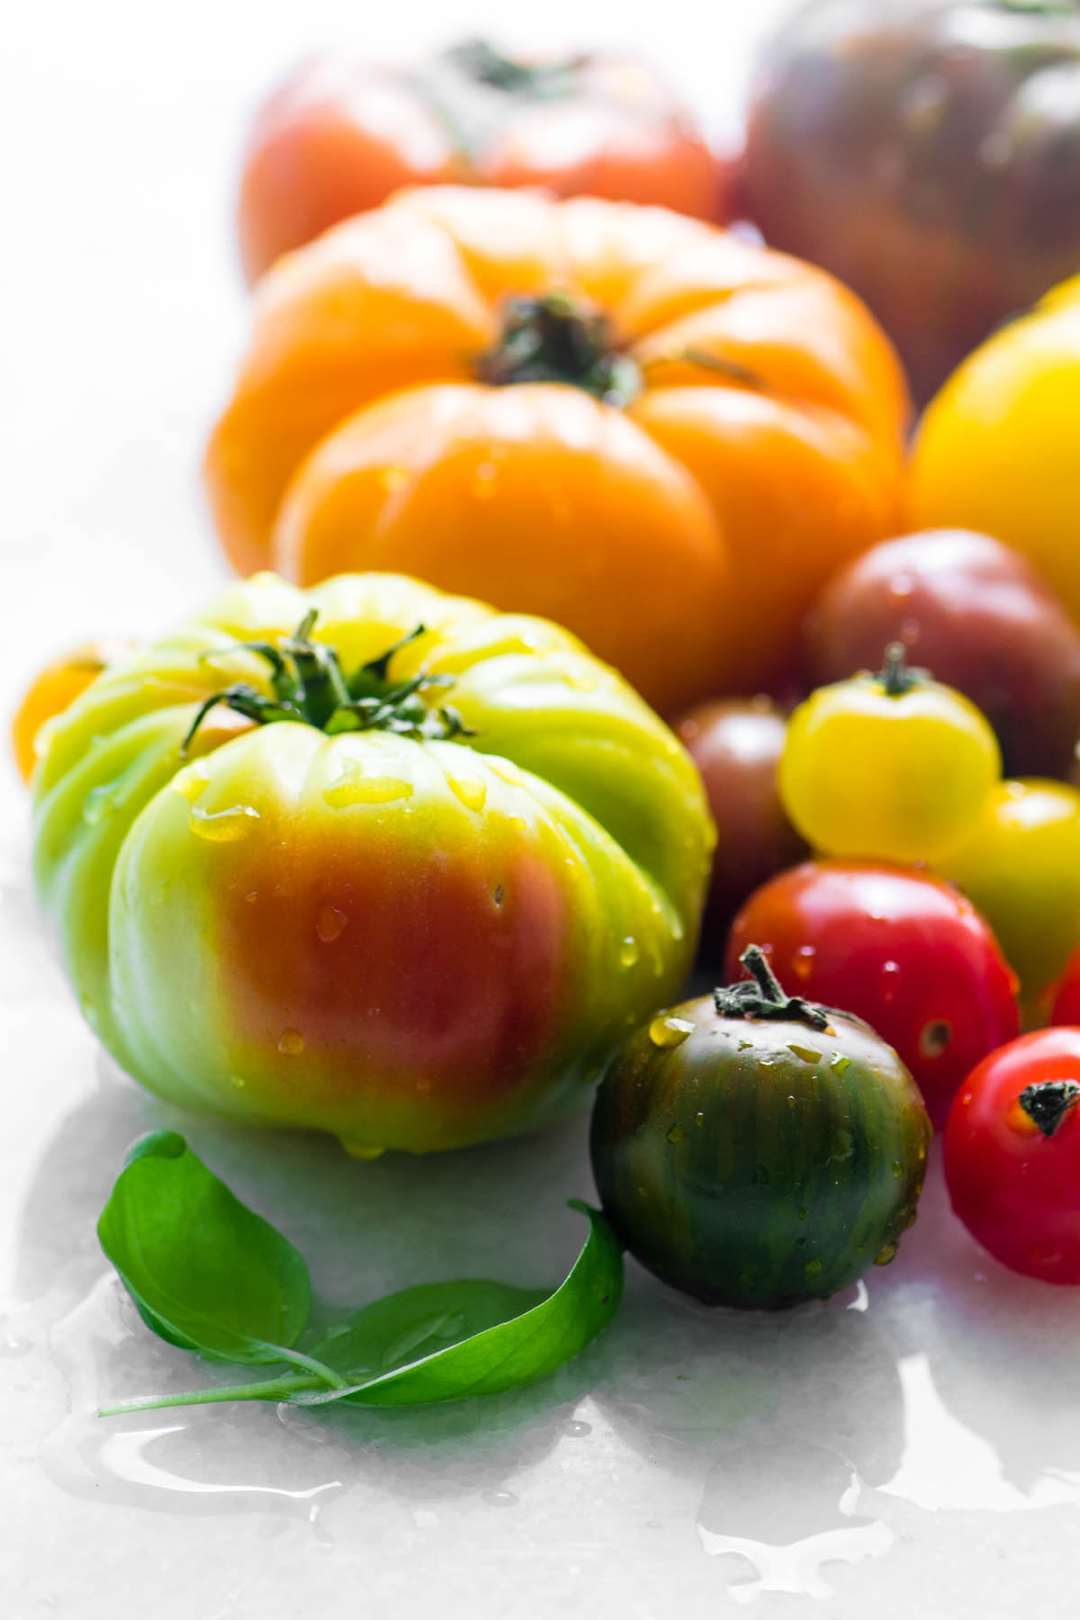 colorful heirloom tomatoes with basil leaves on a white surface